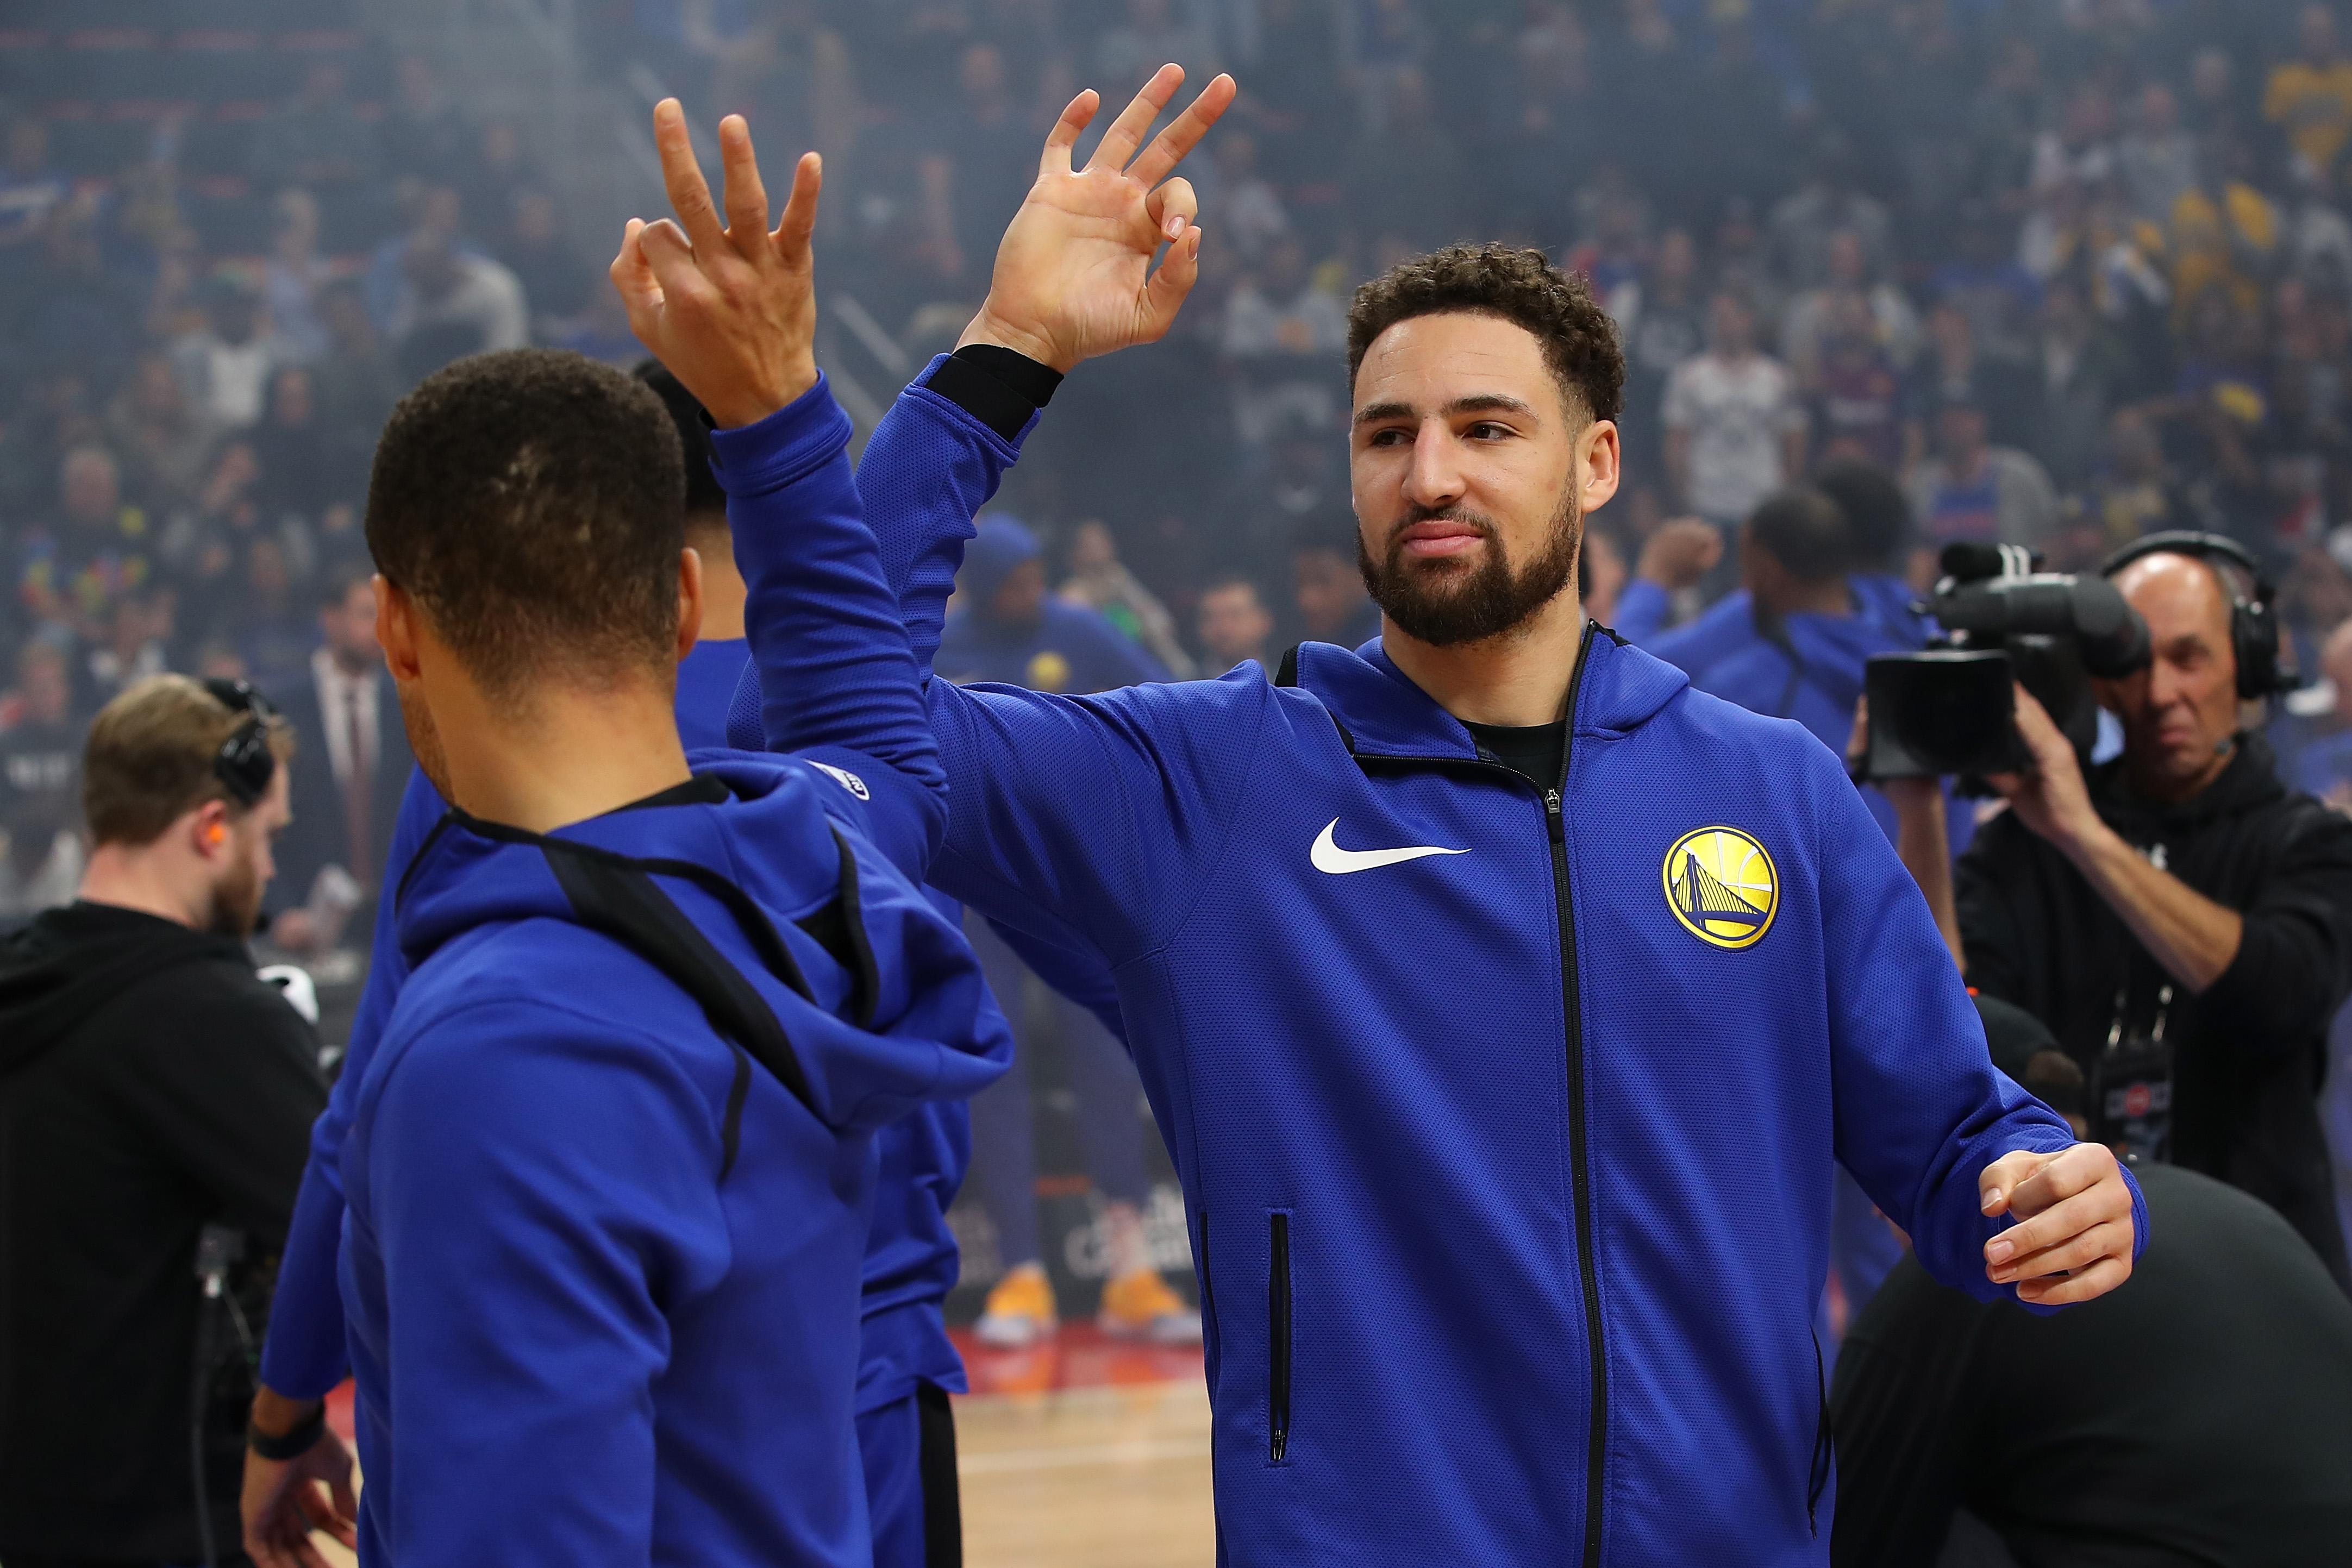 DETROIT, MICHIGAN - DECEMBER 01:  Klay Thompson #11 of the Golden State Warriors is introduced prior to playing the Detroit Pistons at Little Caesars Arena on December 01, 2018 in Detroit, Michigan. NOTE TO USER: User expressly acknowledges and agrees that, by downloading and or using this photograph, User is consenting to the terms and conditions of the Getty Images License Agreement. (Photo by Gregory Shamus/Getty Images)